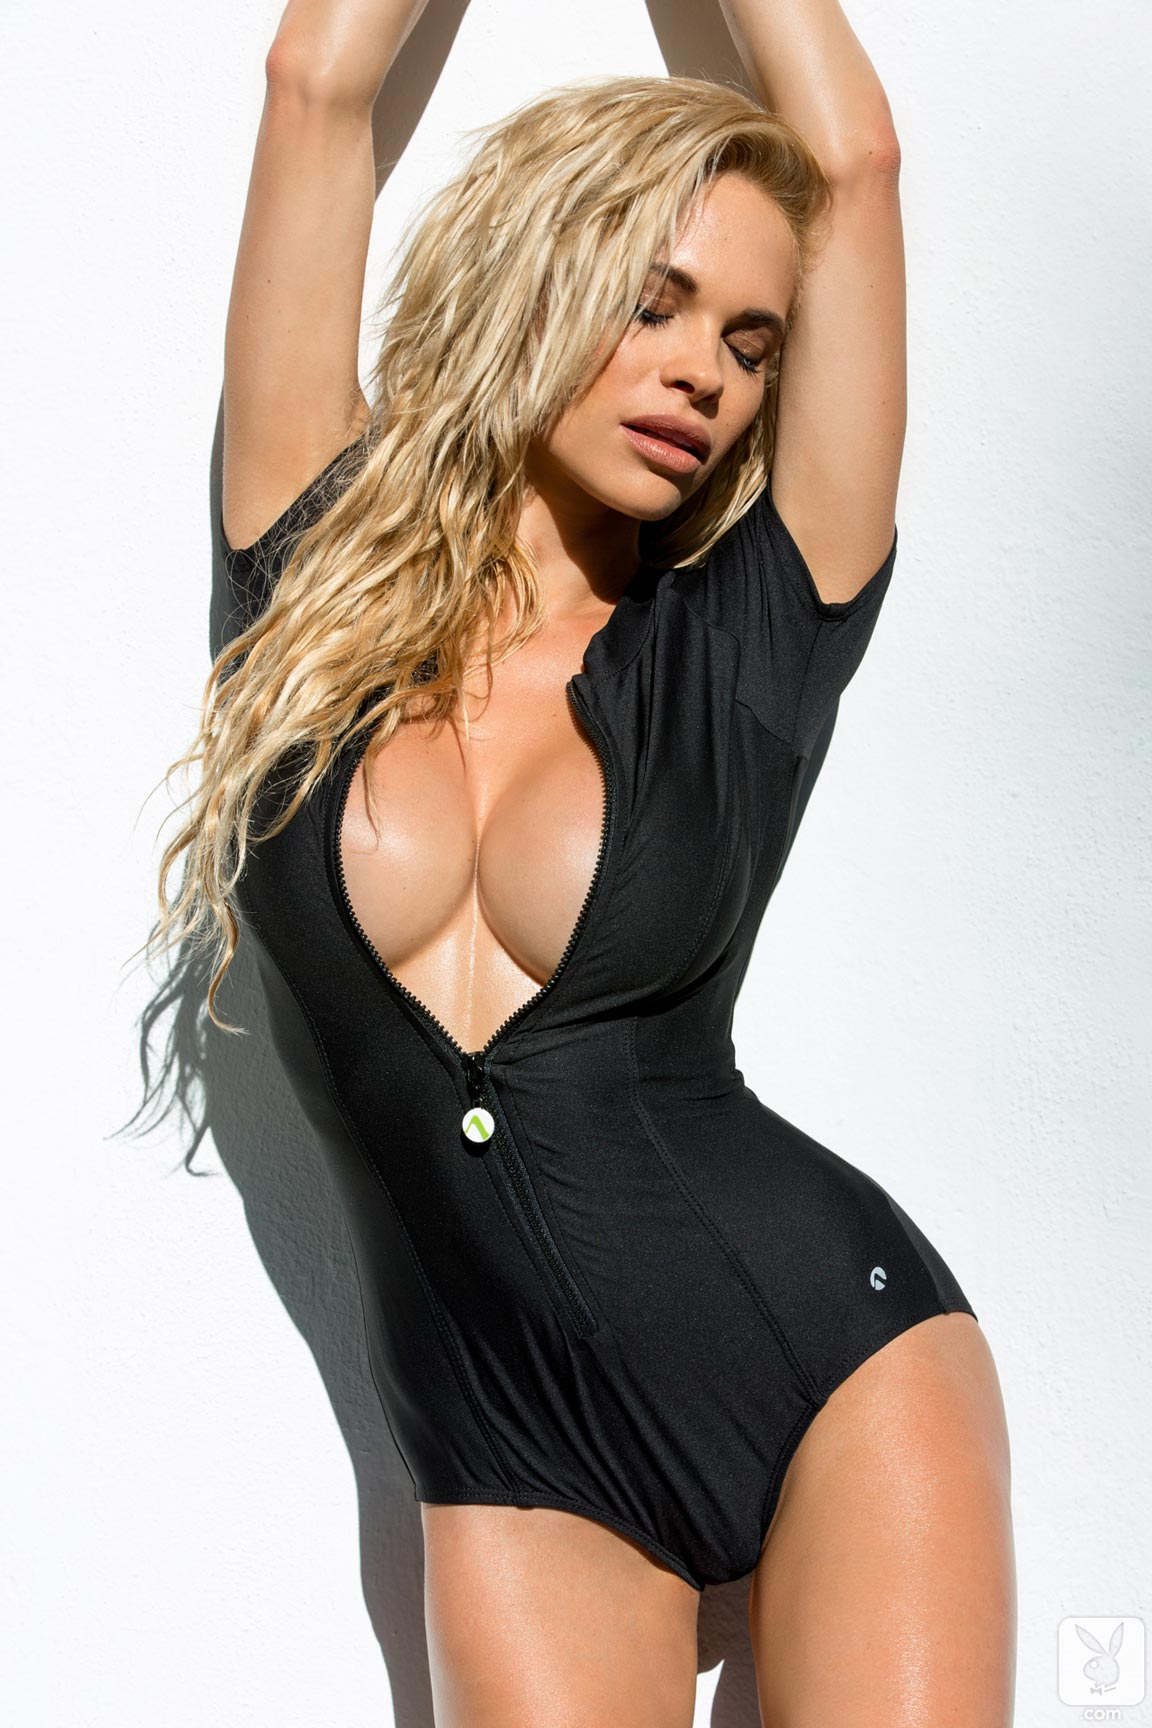 http://www.centerfoldsblog.com/wp-content/uploads/2014/06/playboy-playmate-dani-mathers-removes-her-black-wetsuit-near-the-pool.jpg